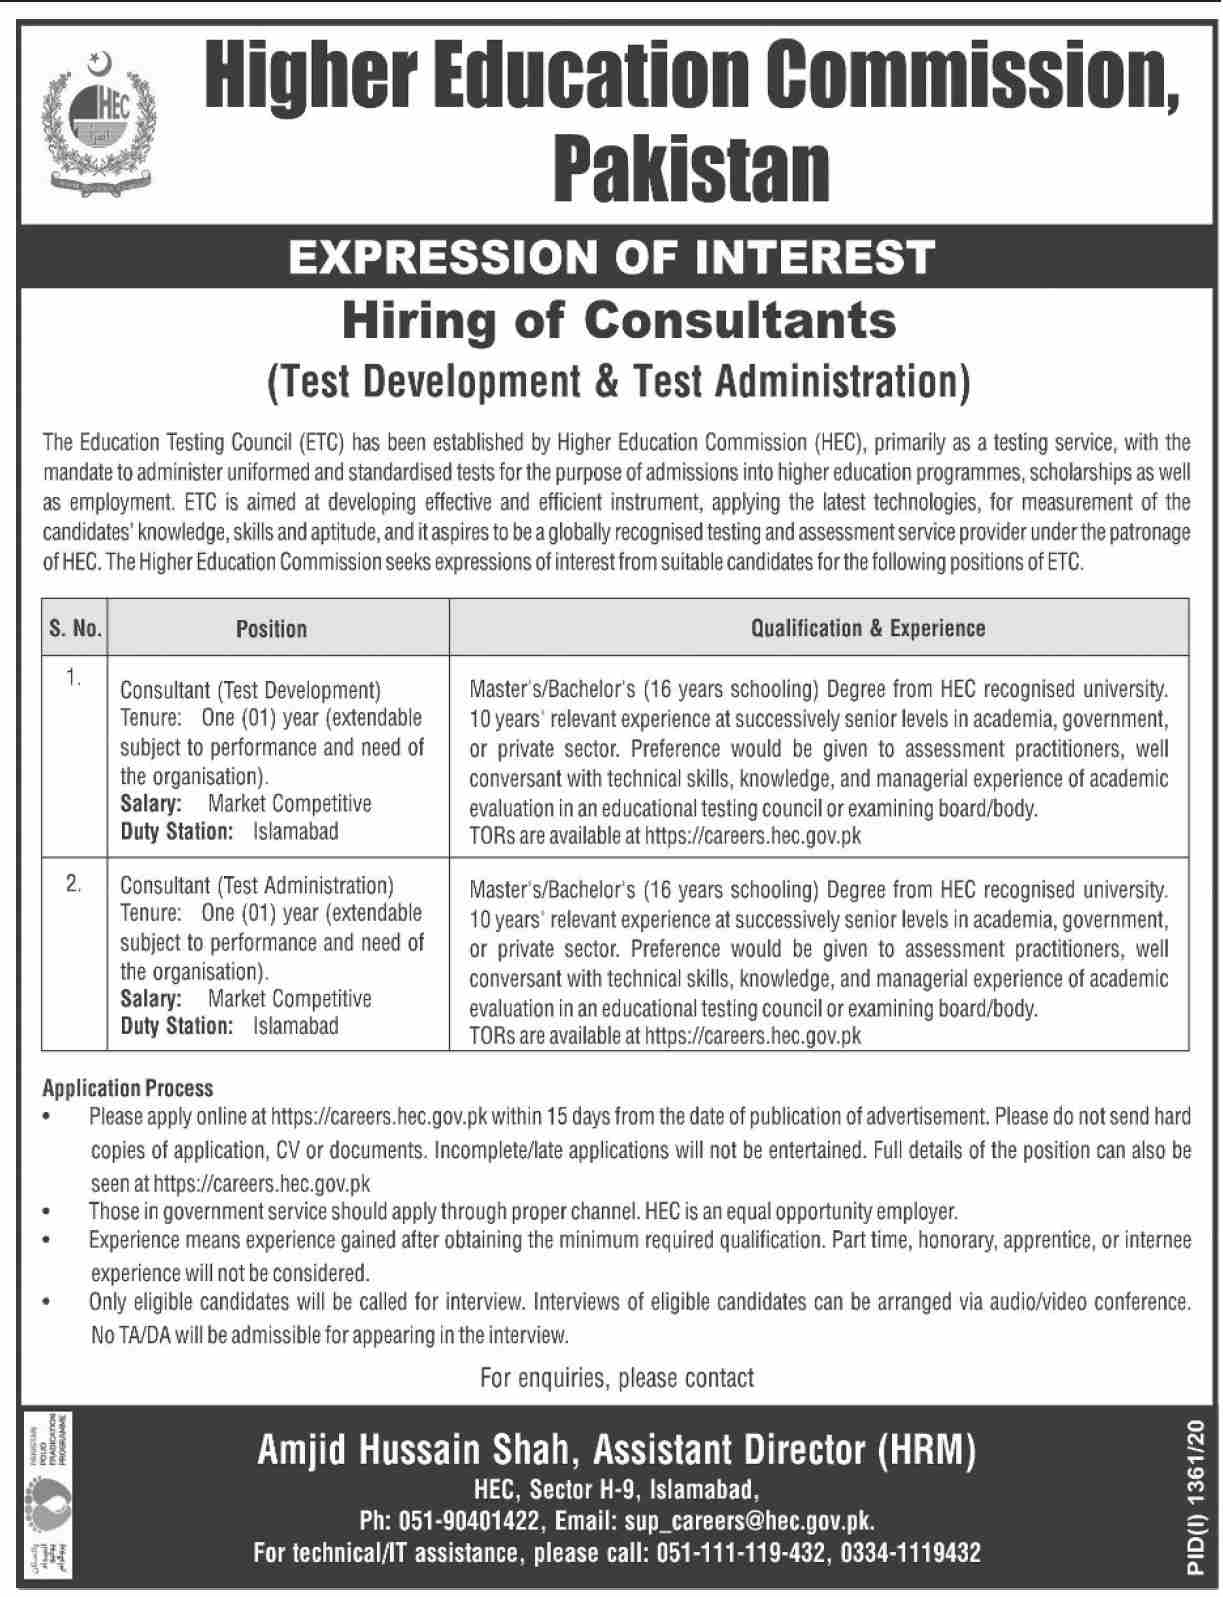 Higher Education Commission Pakistan Jobs September 2020